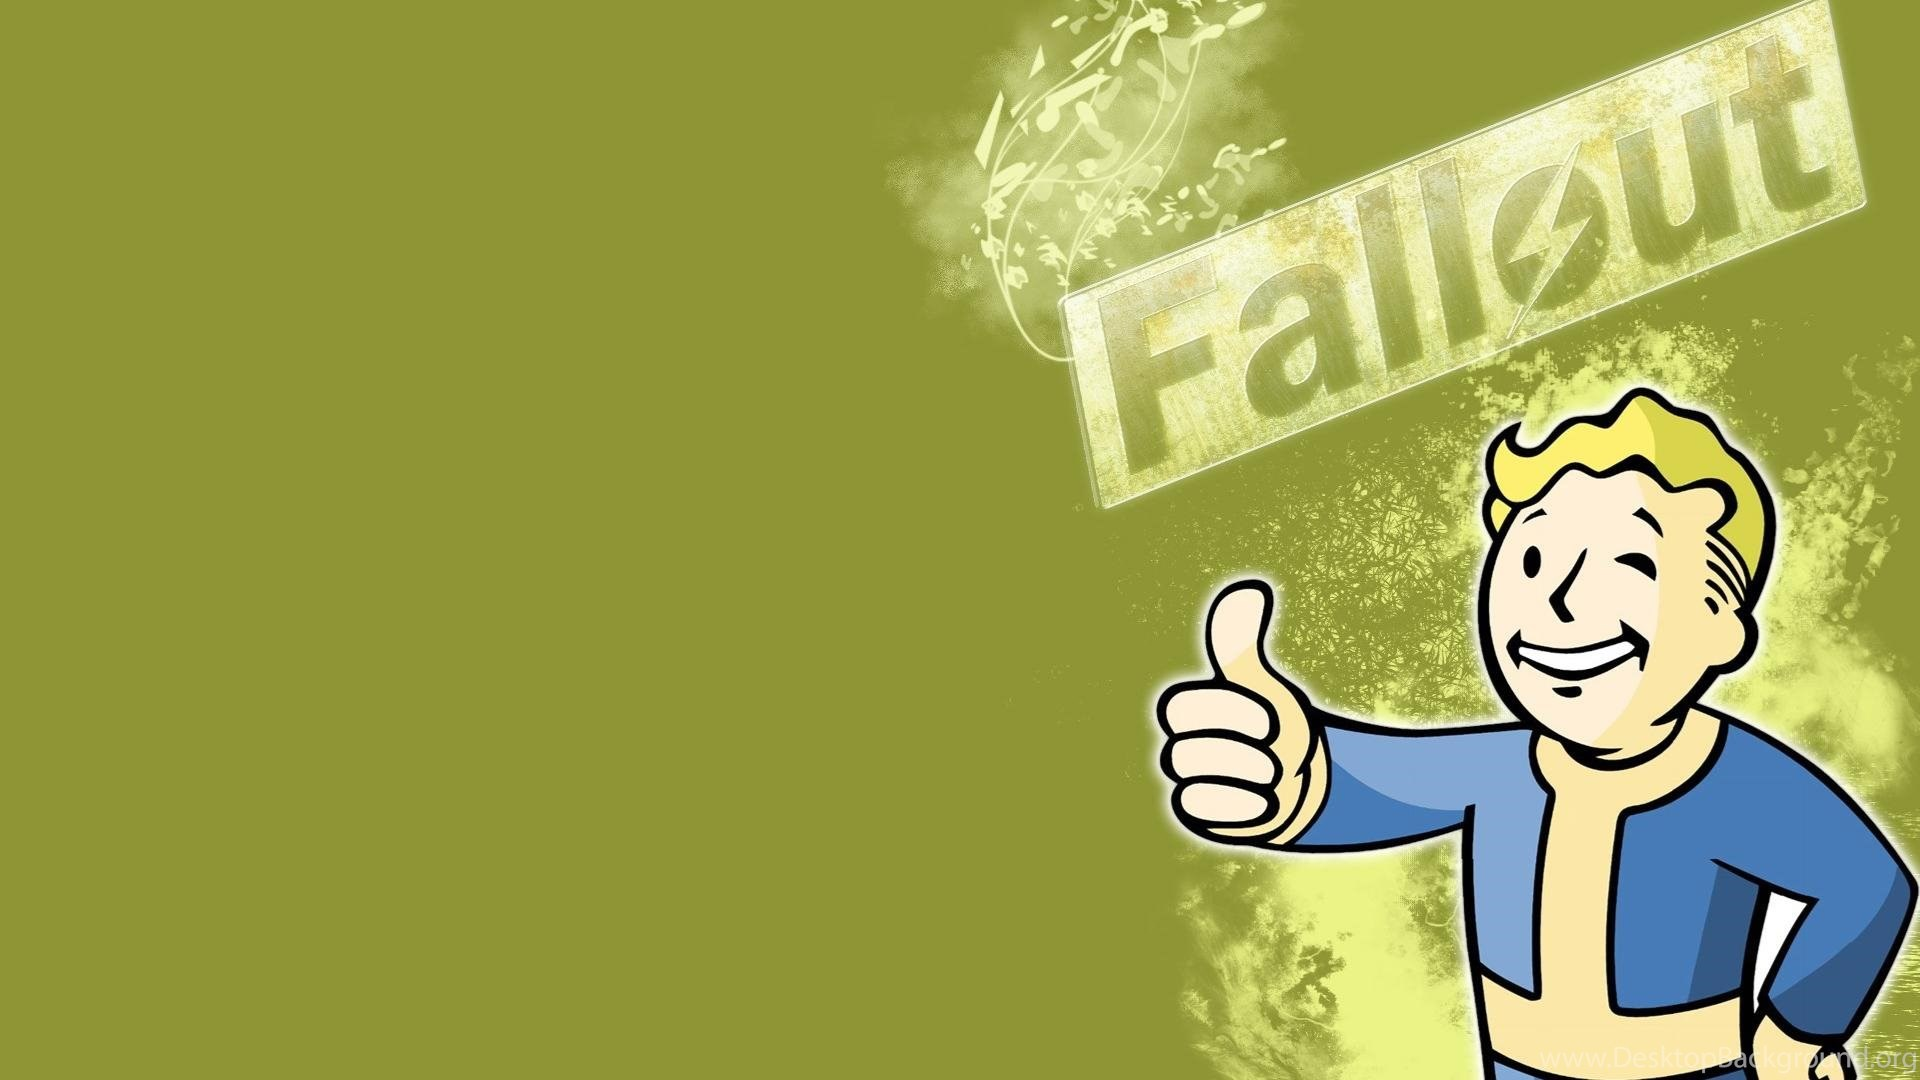 Abstract Fallout Pip Boy Wallpapers Desktop Background